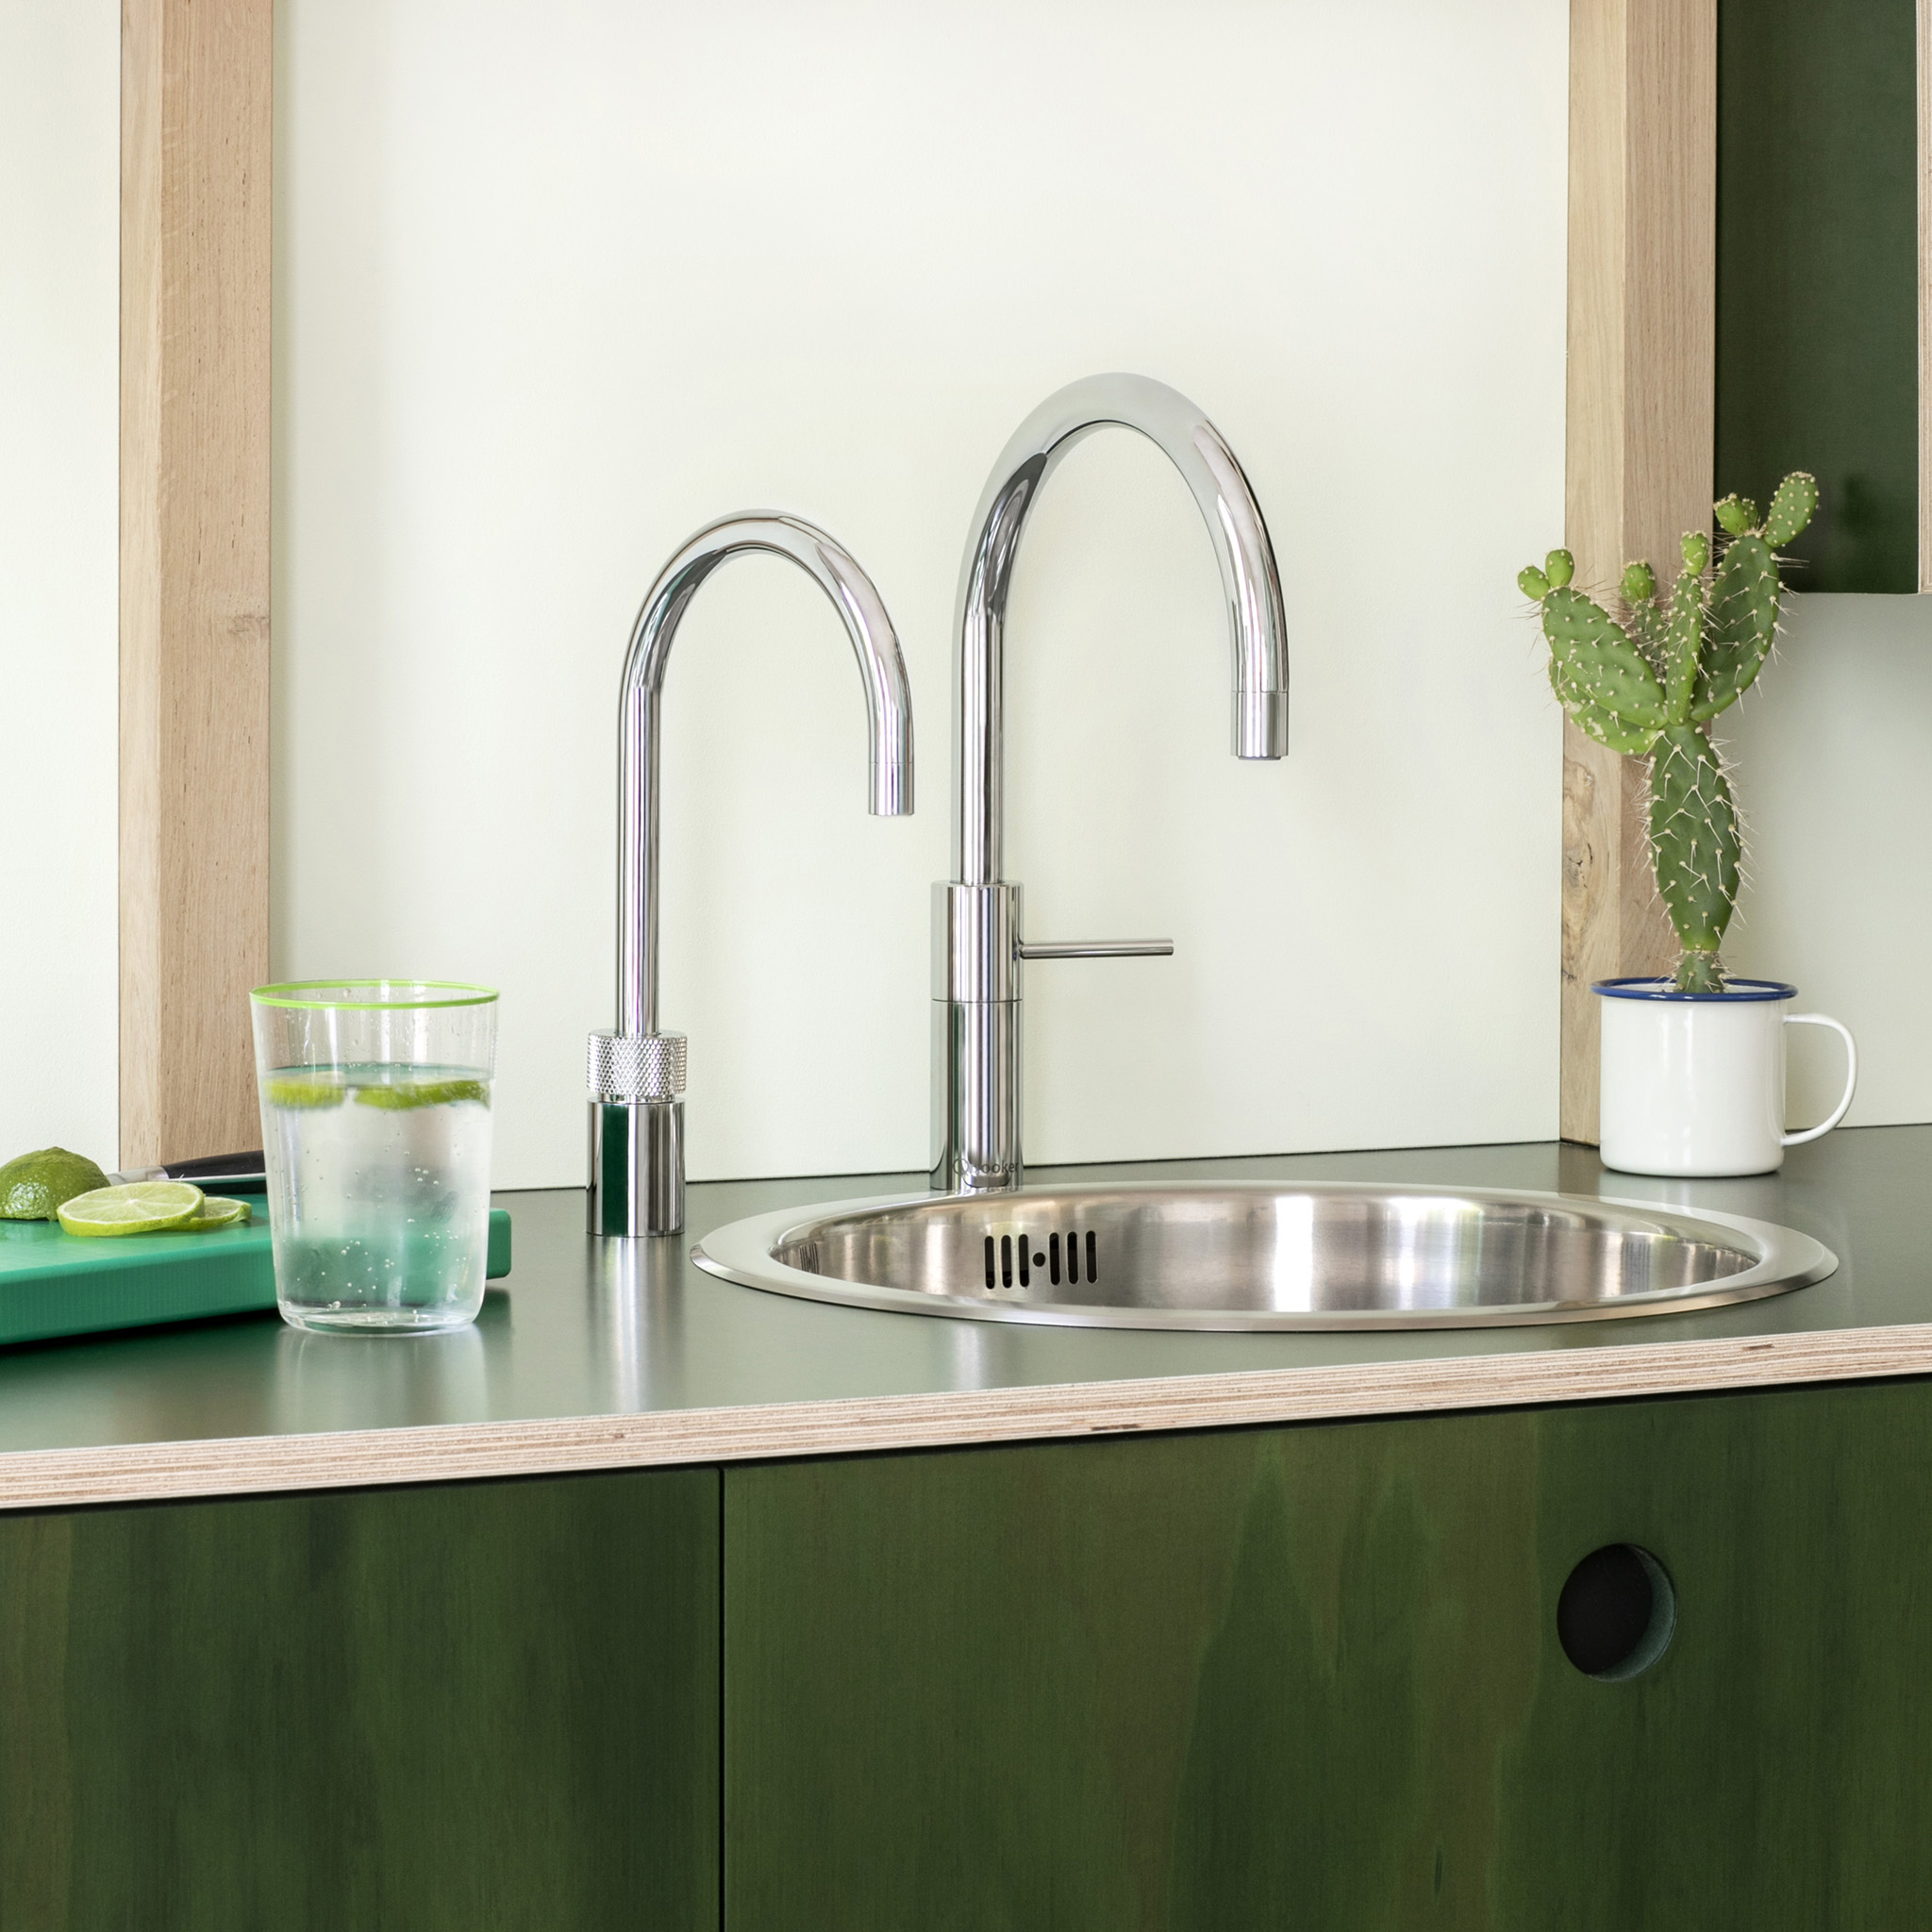 Quooker The Tap That Does It All